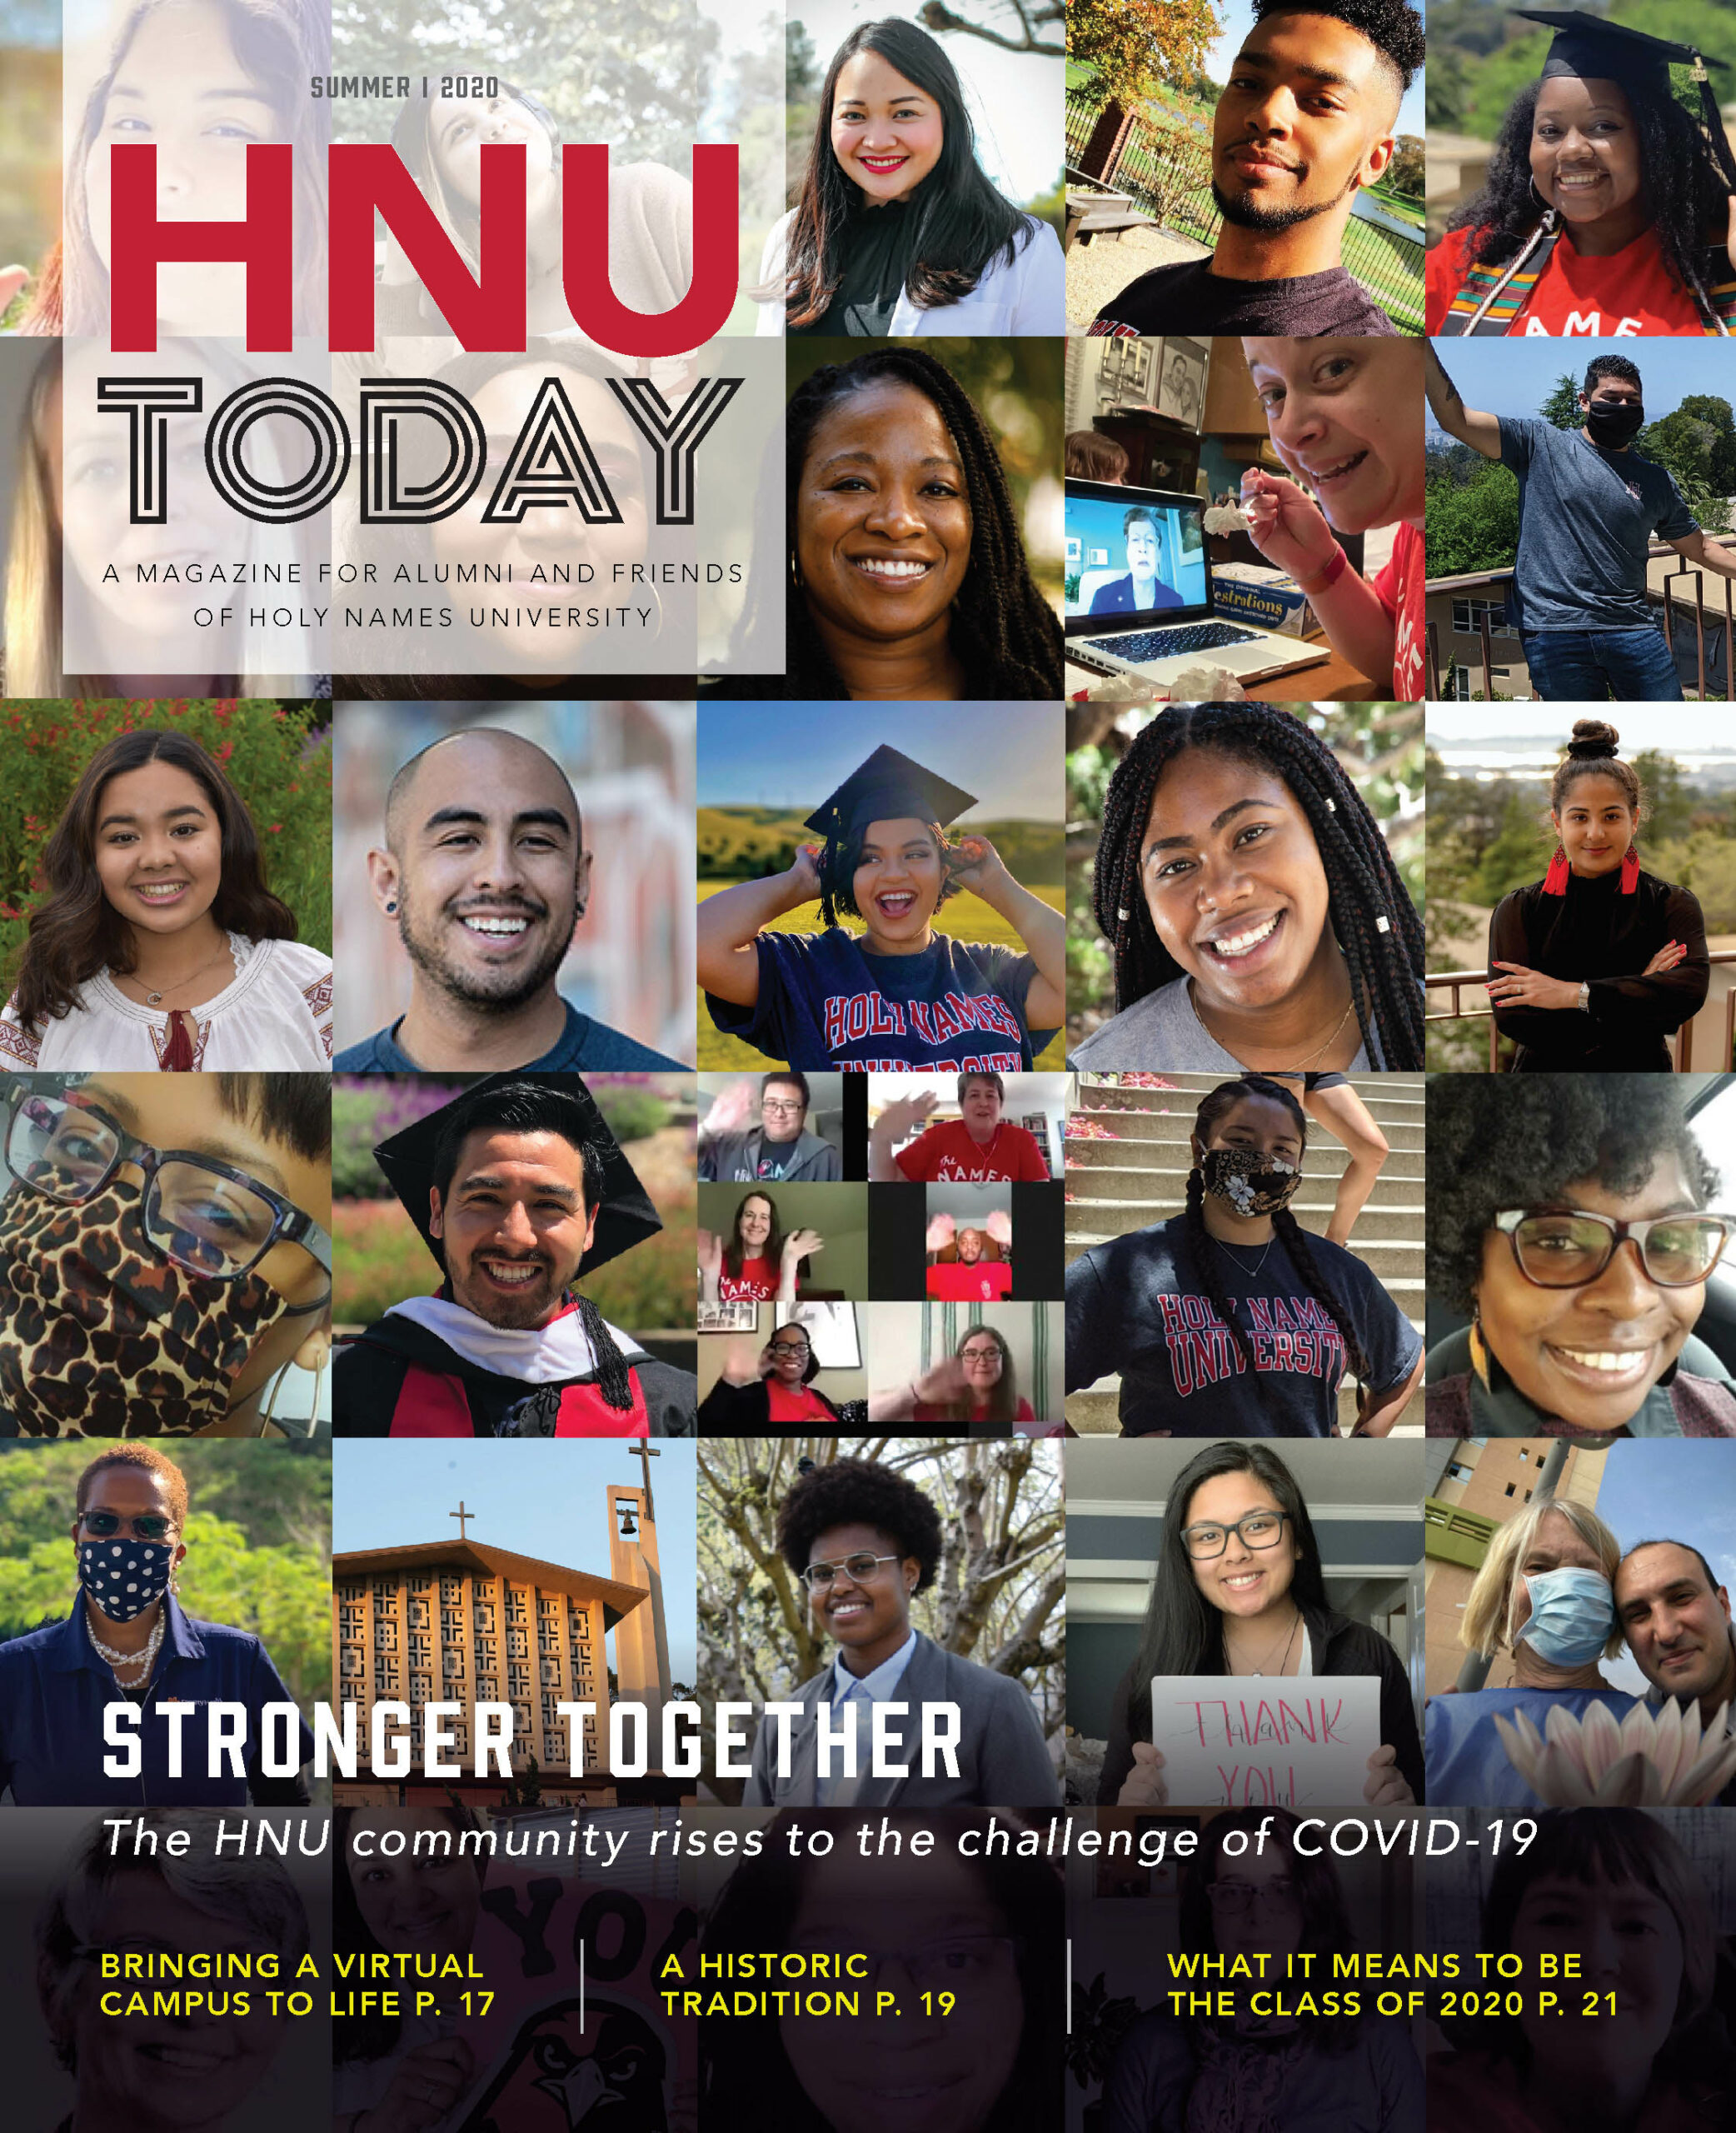 Collage of Holy Names University alumni and friends for Summer 2020 edition of HNU Today magazine